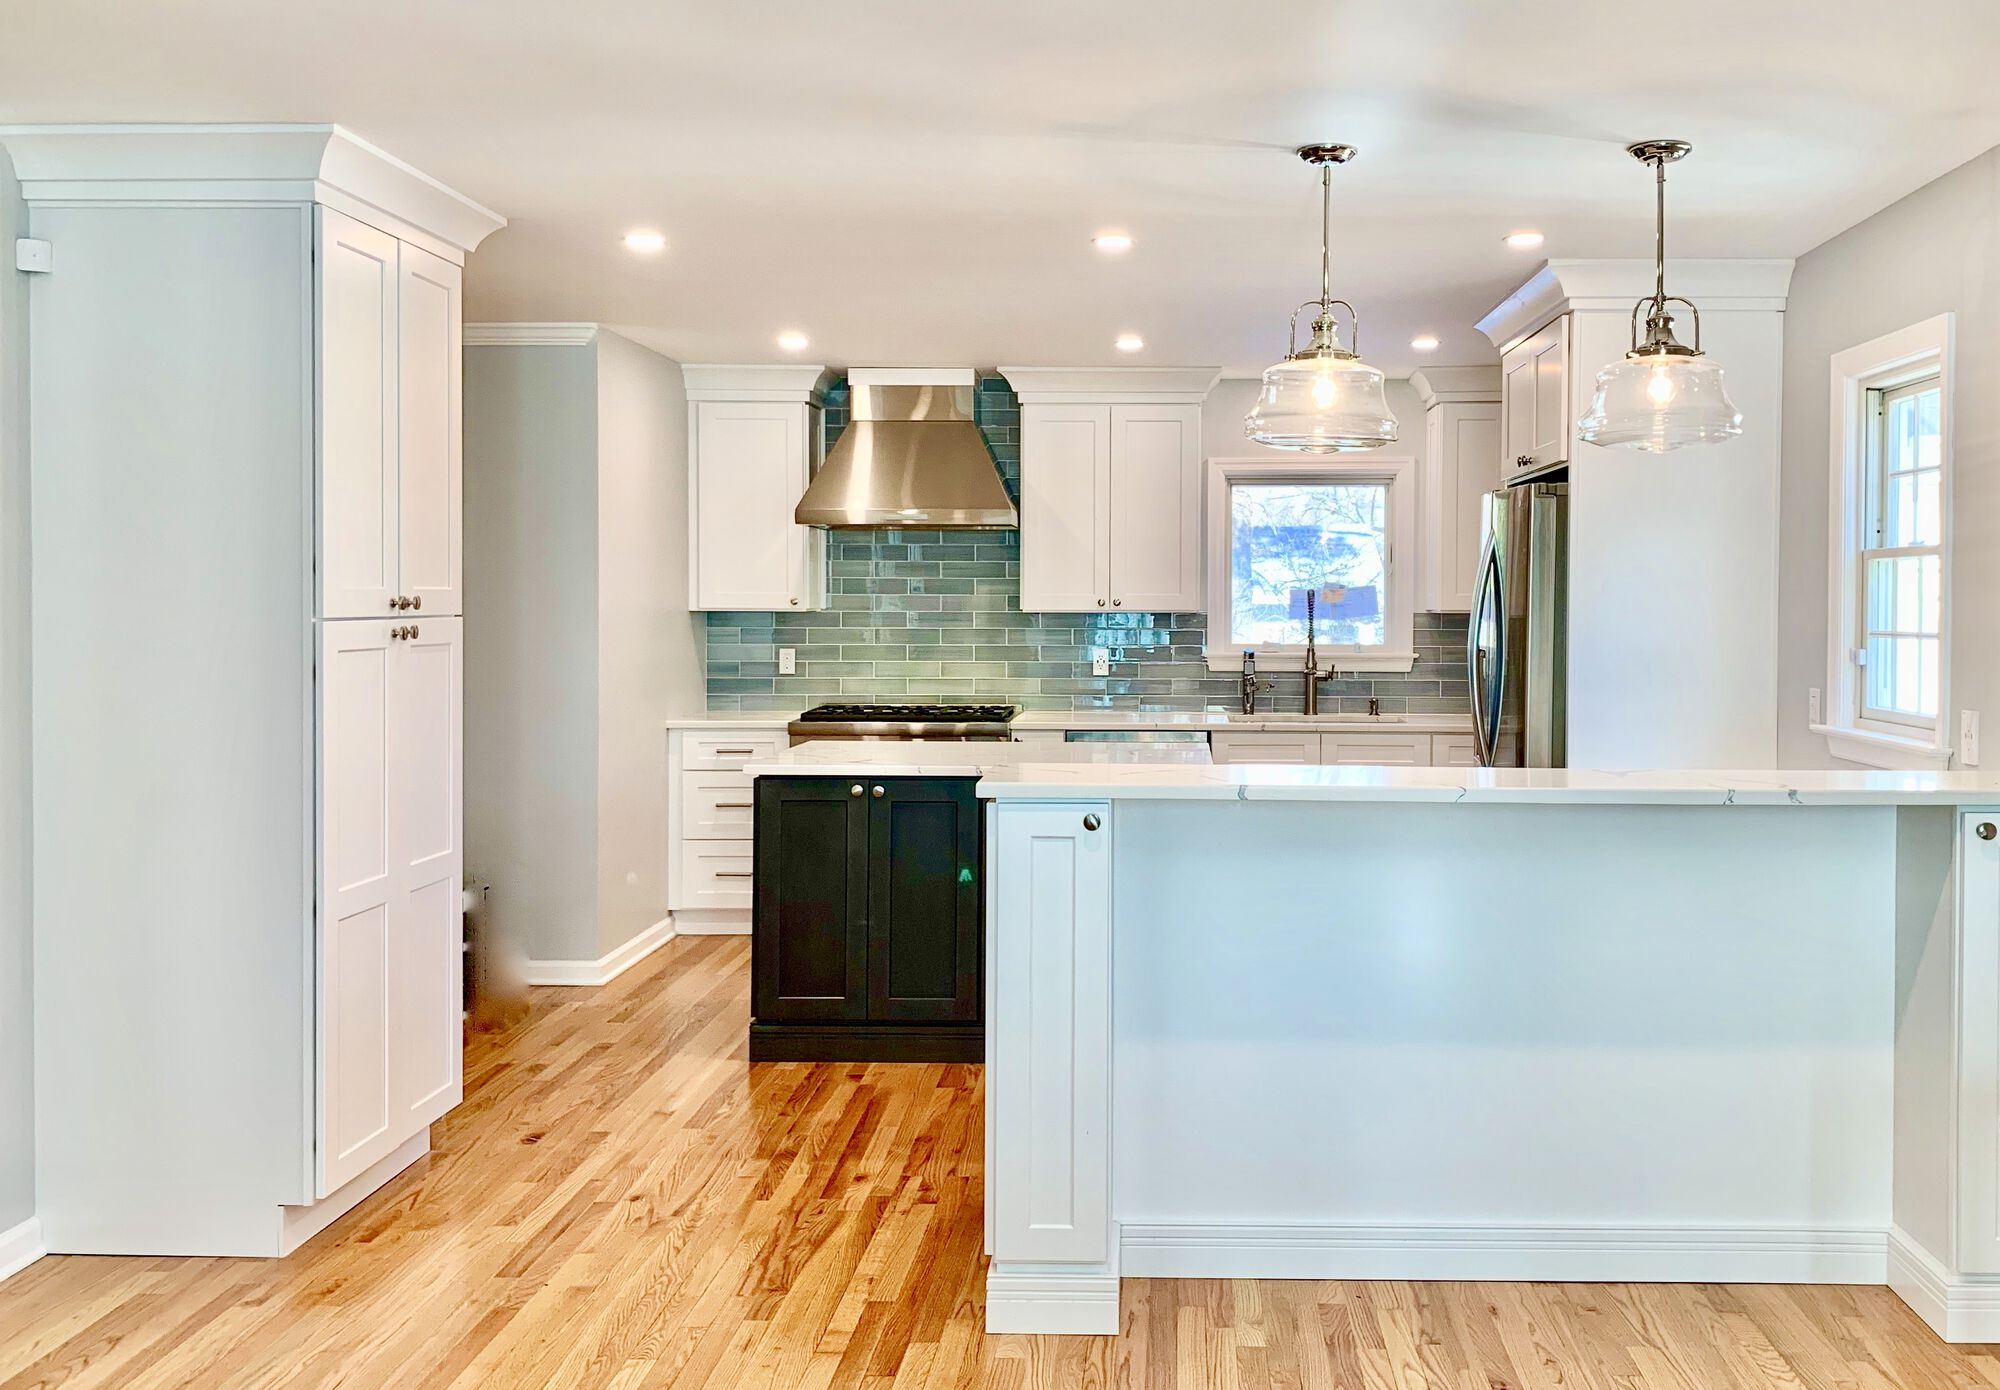 Updated Kitchen in Bergen County with Wall Between Kitchen and Dining Removed to allow for Open Floorplan